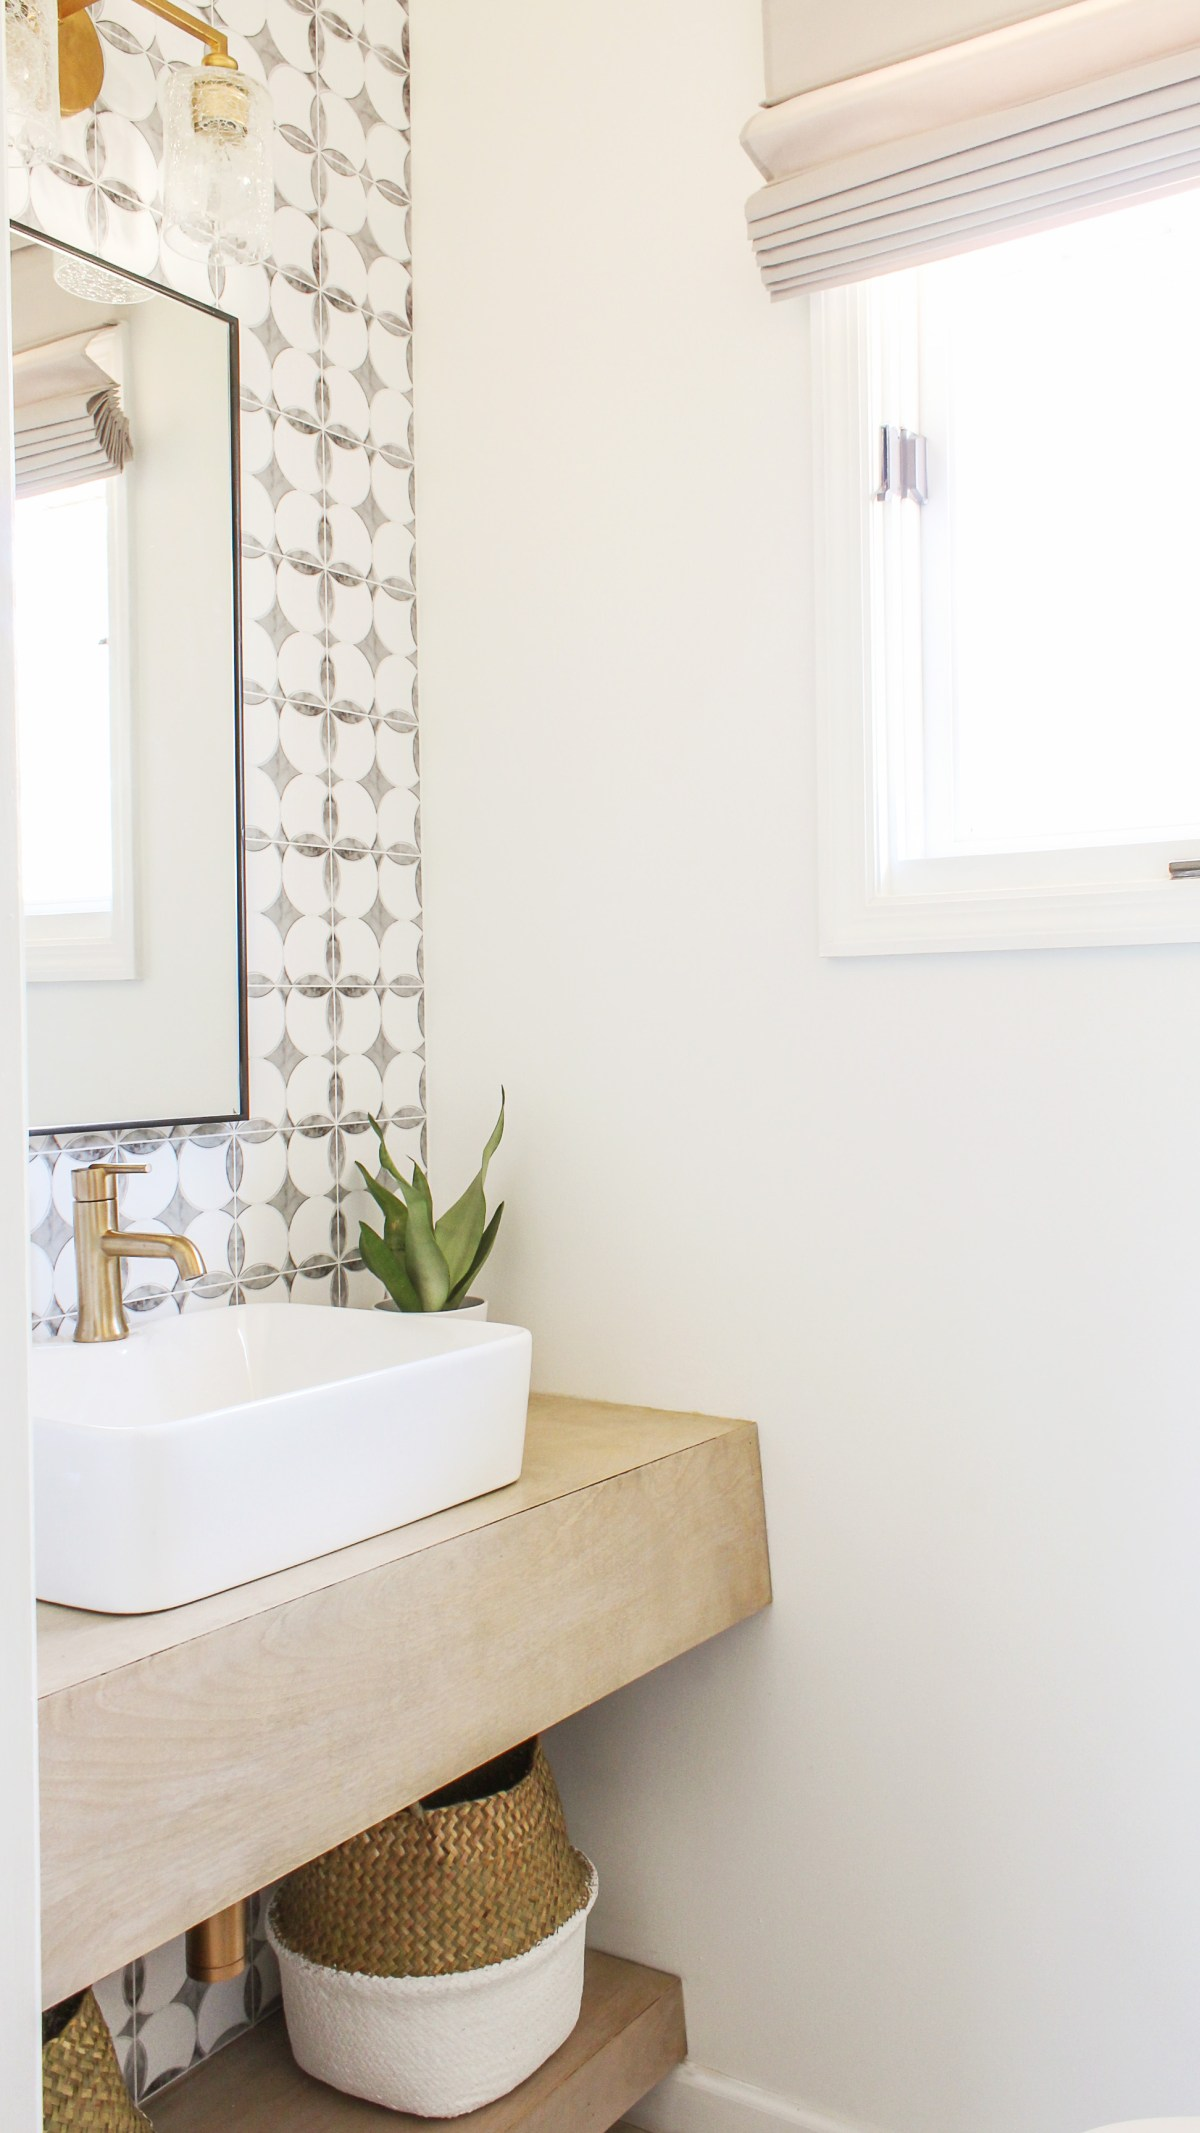 DIY Budget-Friendly Powder Room Redo - Boho Chic Bathroom